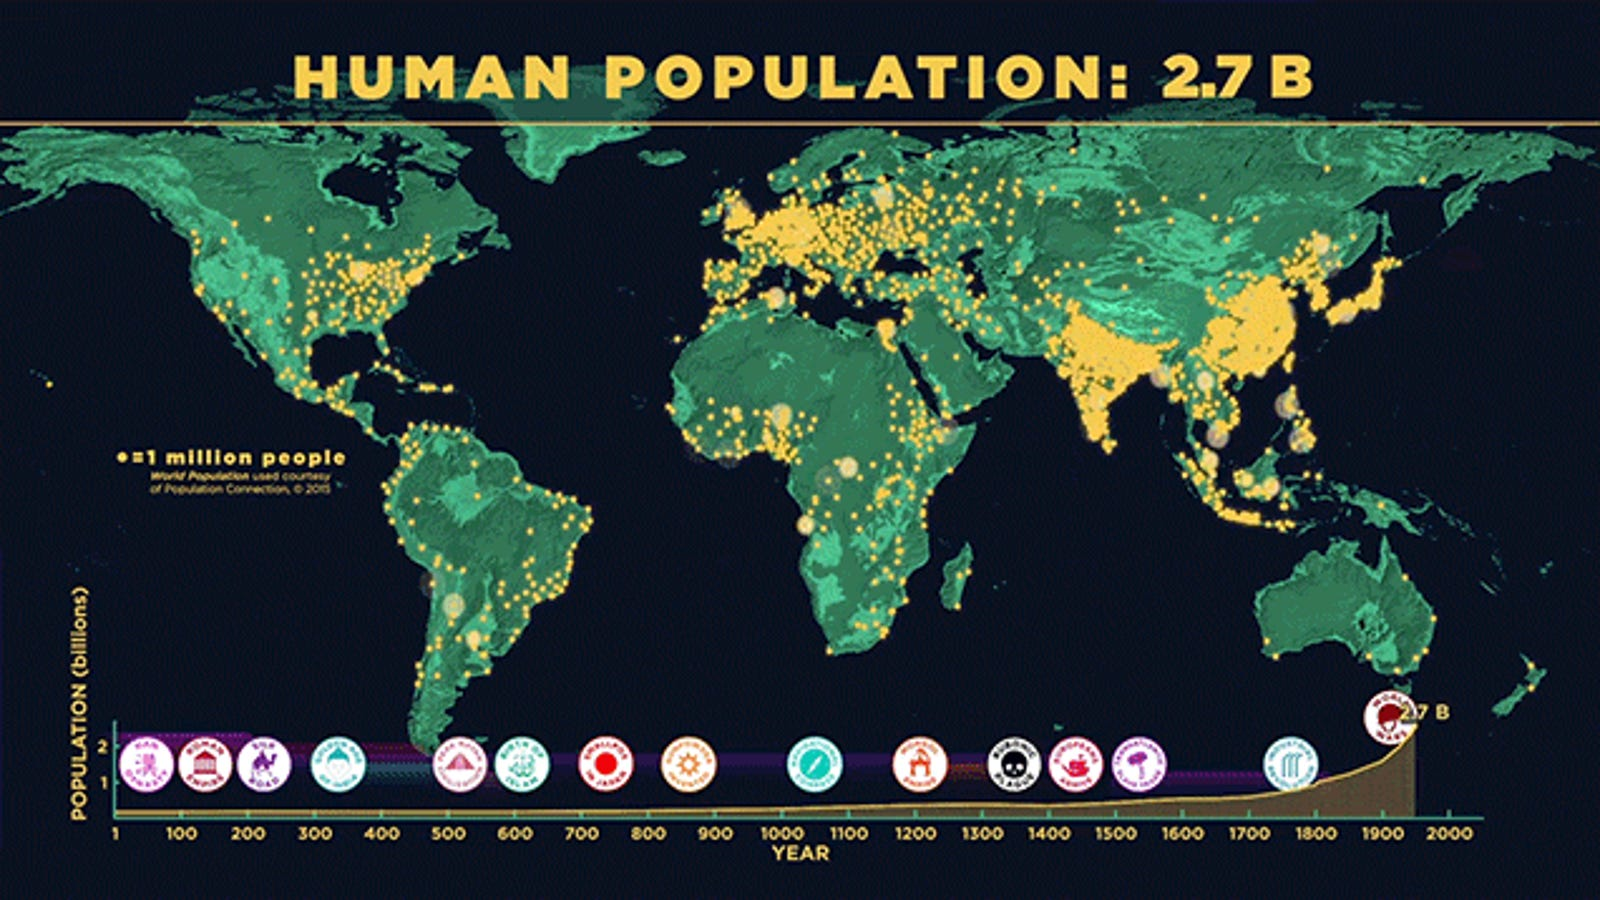 Watch How the World's Population Has Grown Over the Years